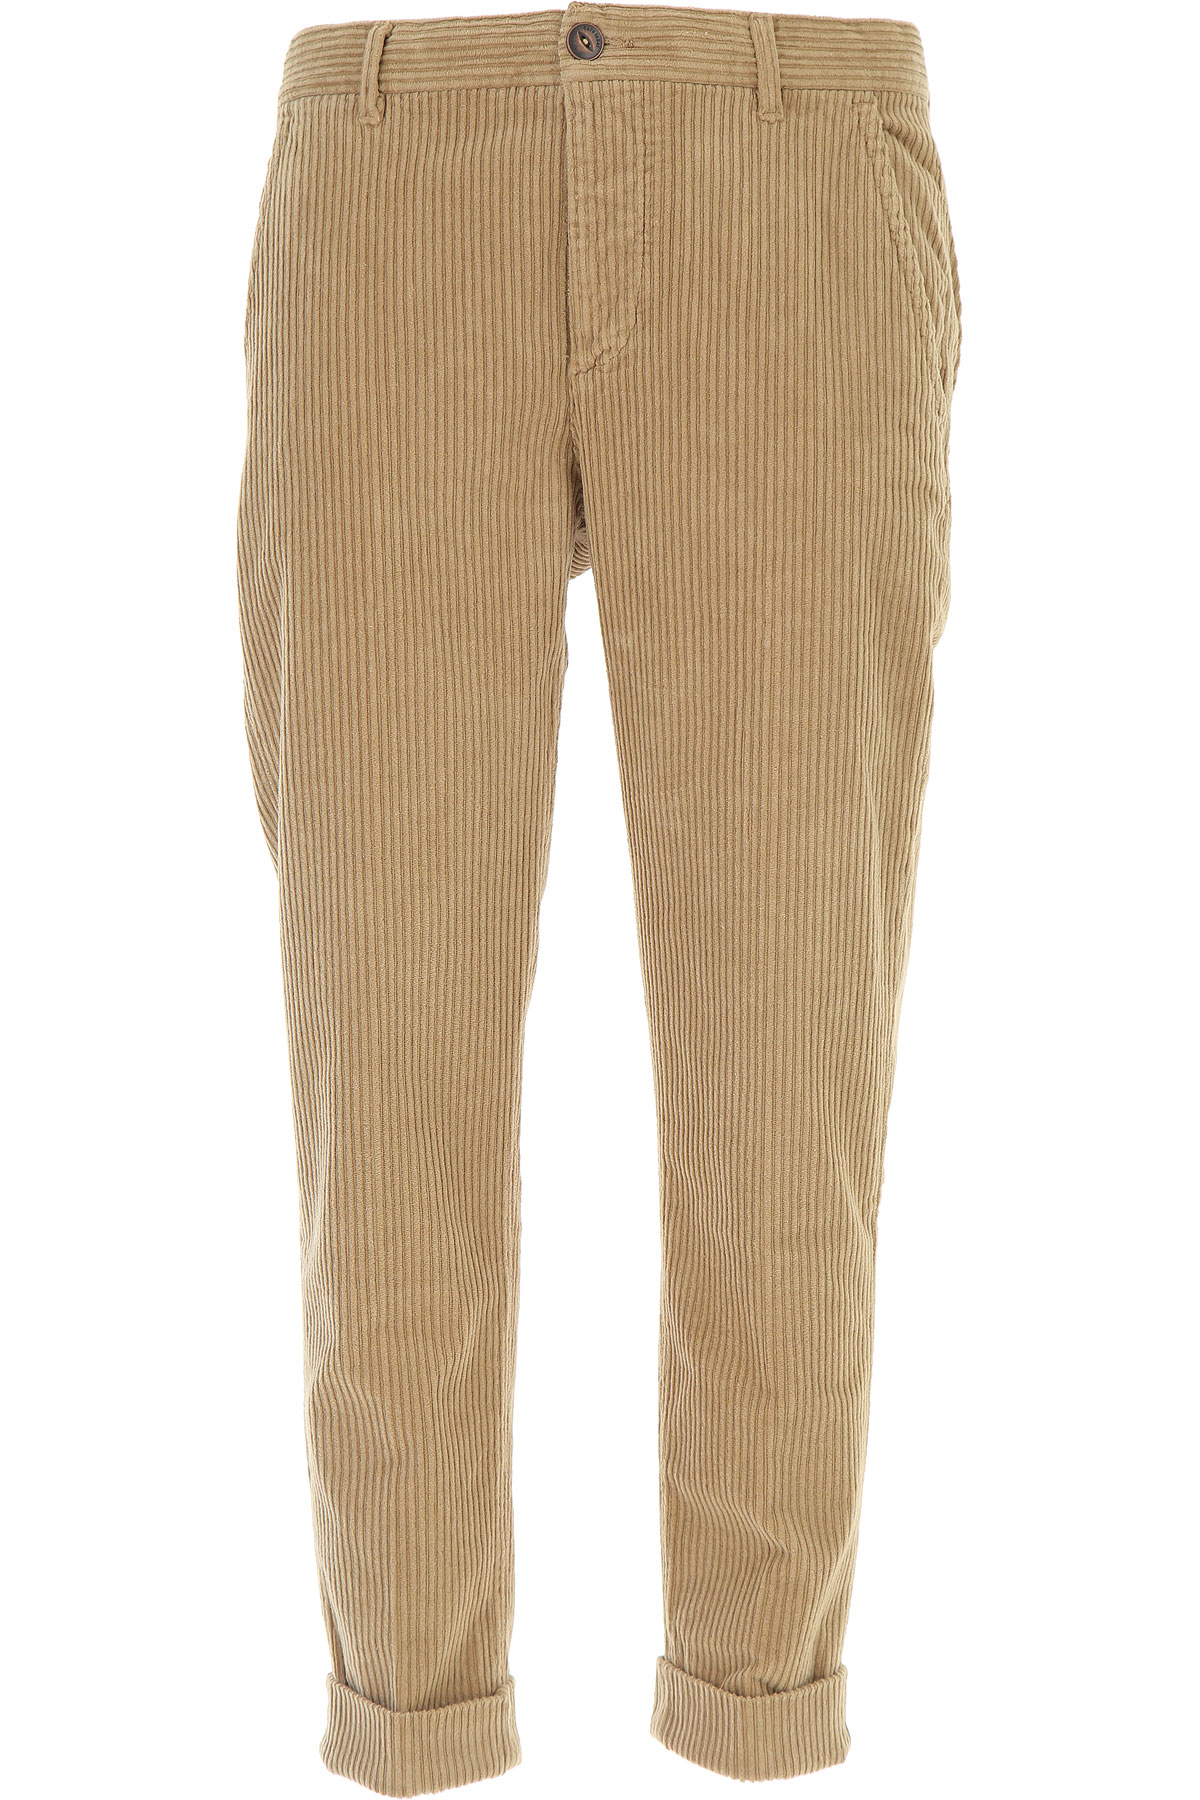 Care Label Pants for Men On Sale, Camel, Cotton, 2017, Waist 30 inches - Lenght 32 in Waist 31 inches - Lenght 32 in Waist 32 inches - Lenght 32 in Waist 33 inches - Lenght 32 in Waist 34 inches - Len